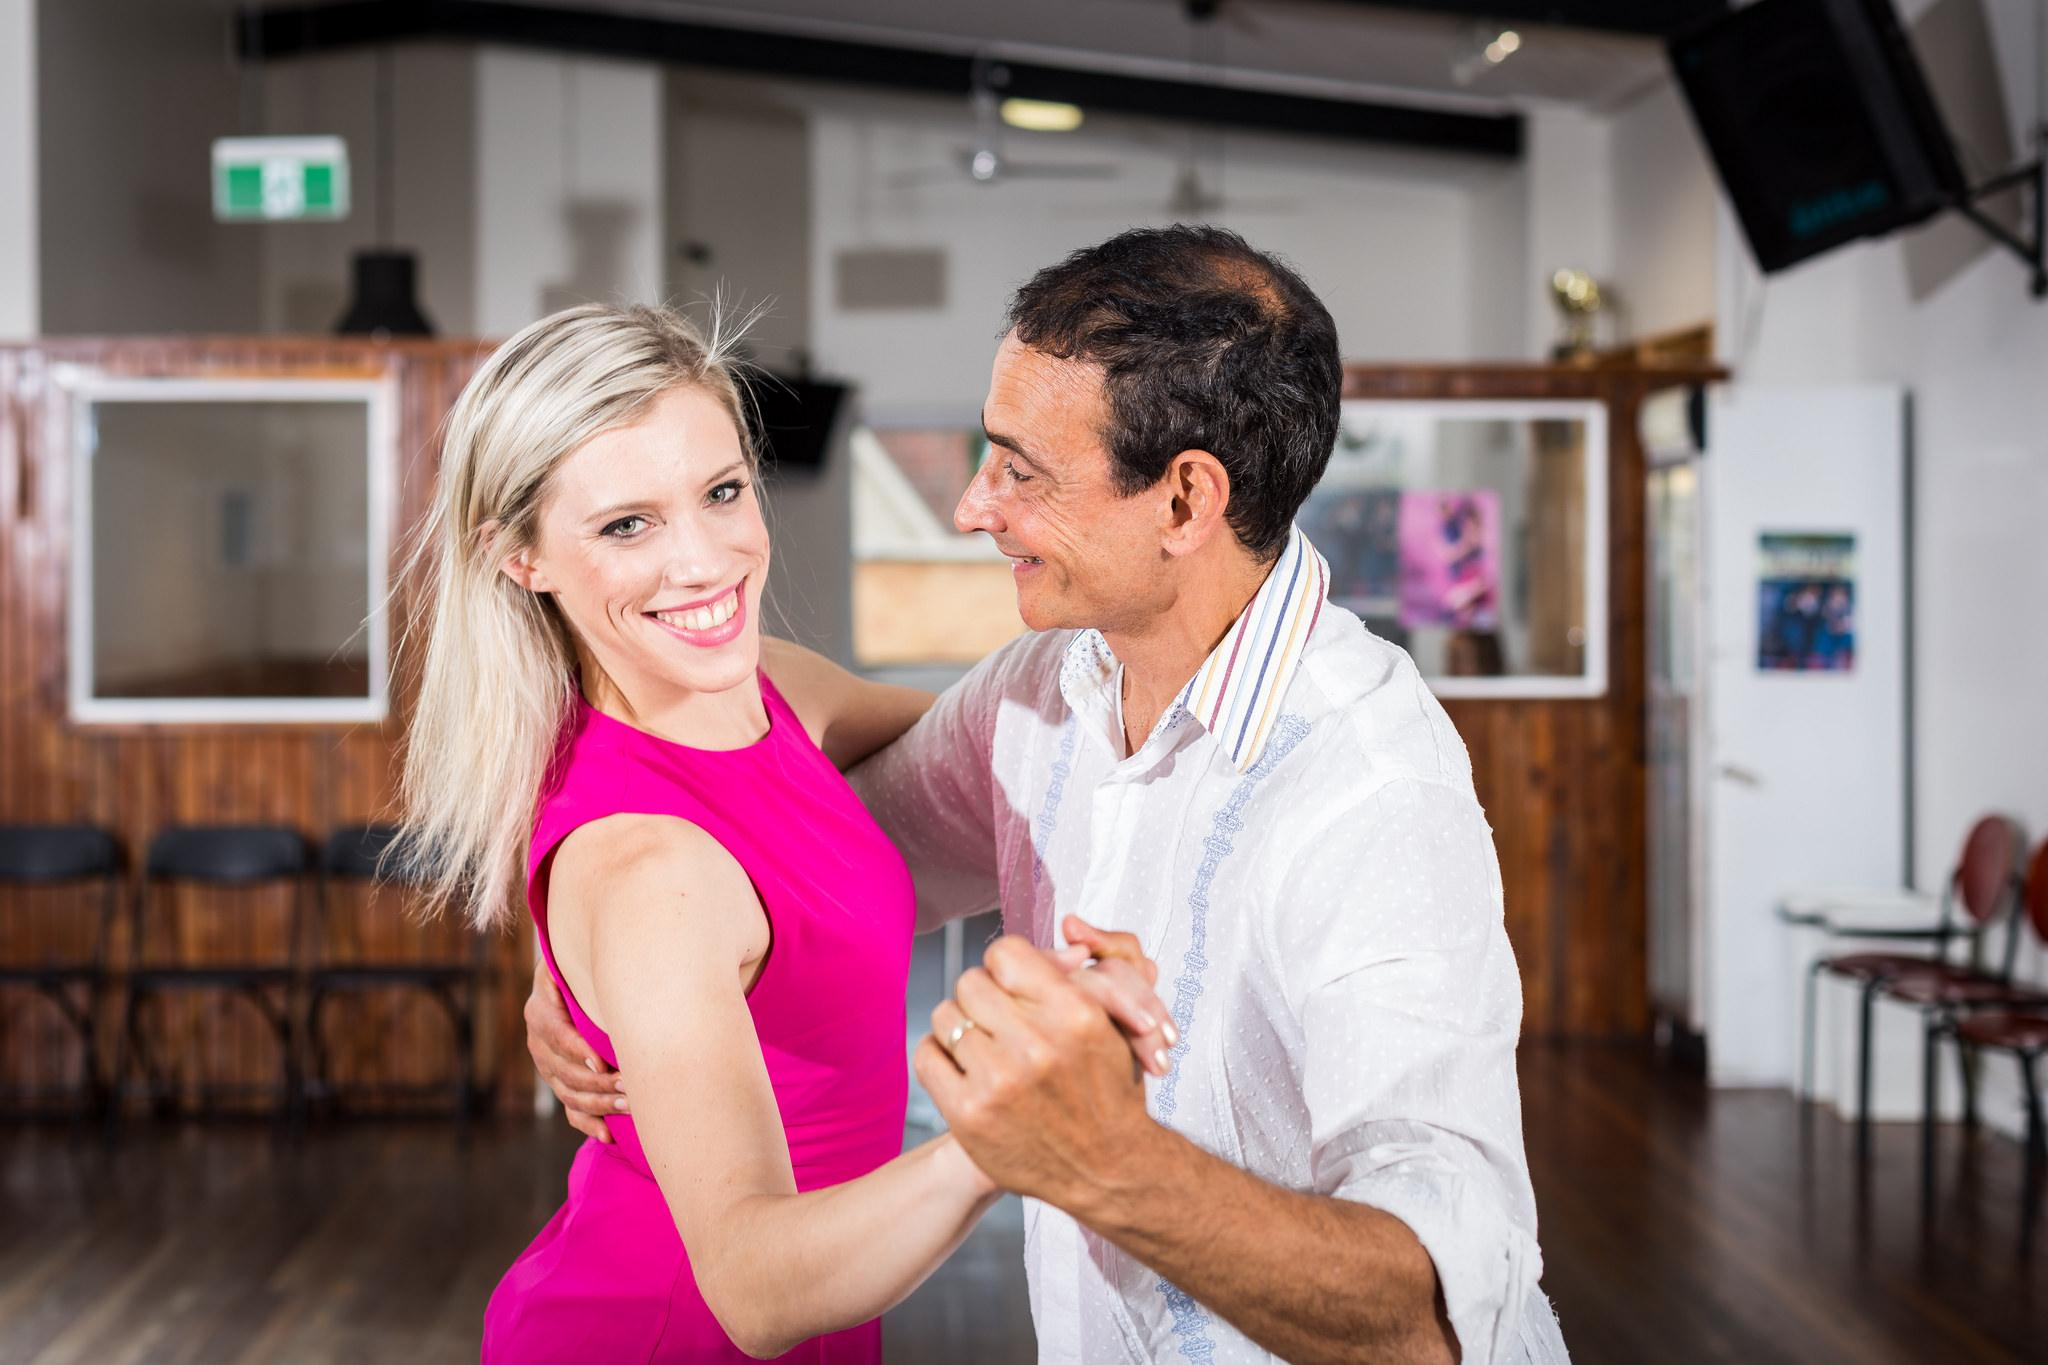 New Release Latin Dance Starter 10-Week Course. Connection, Community, Fun.